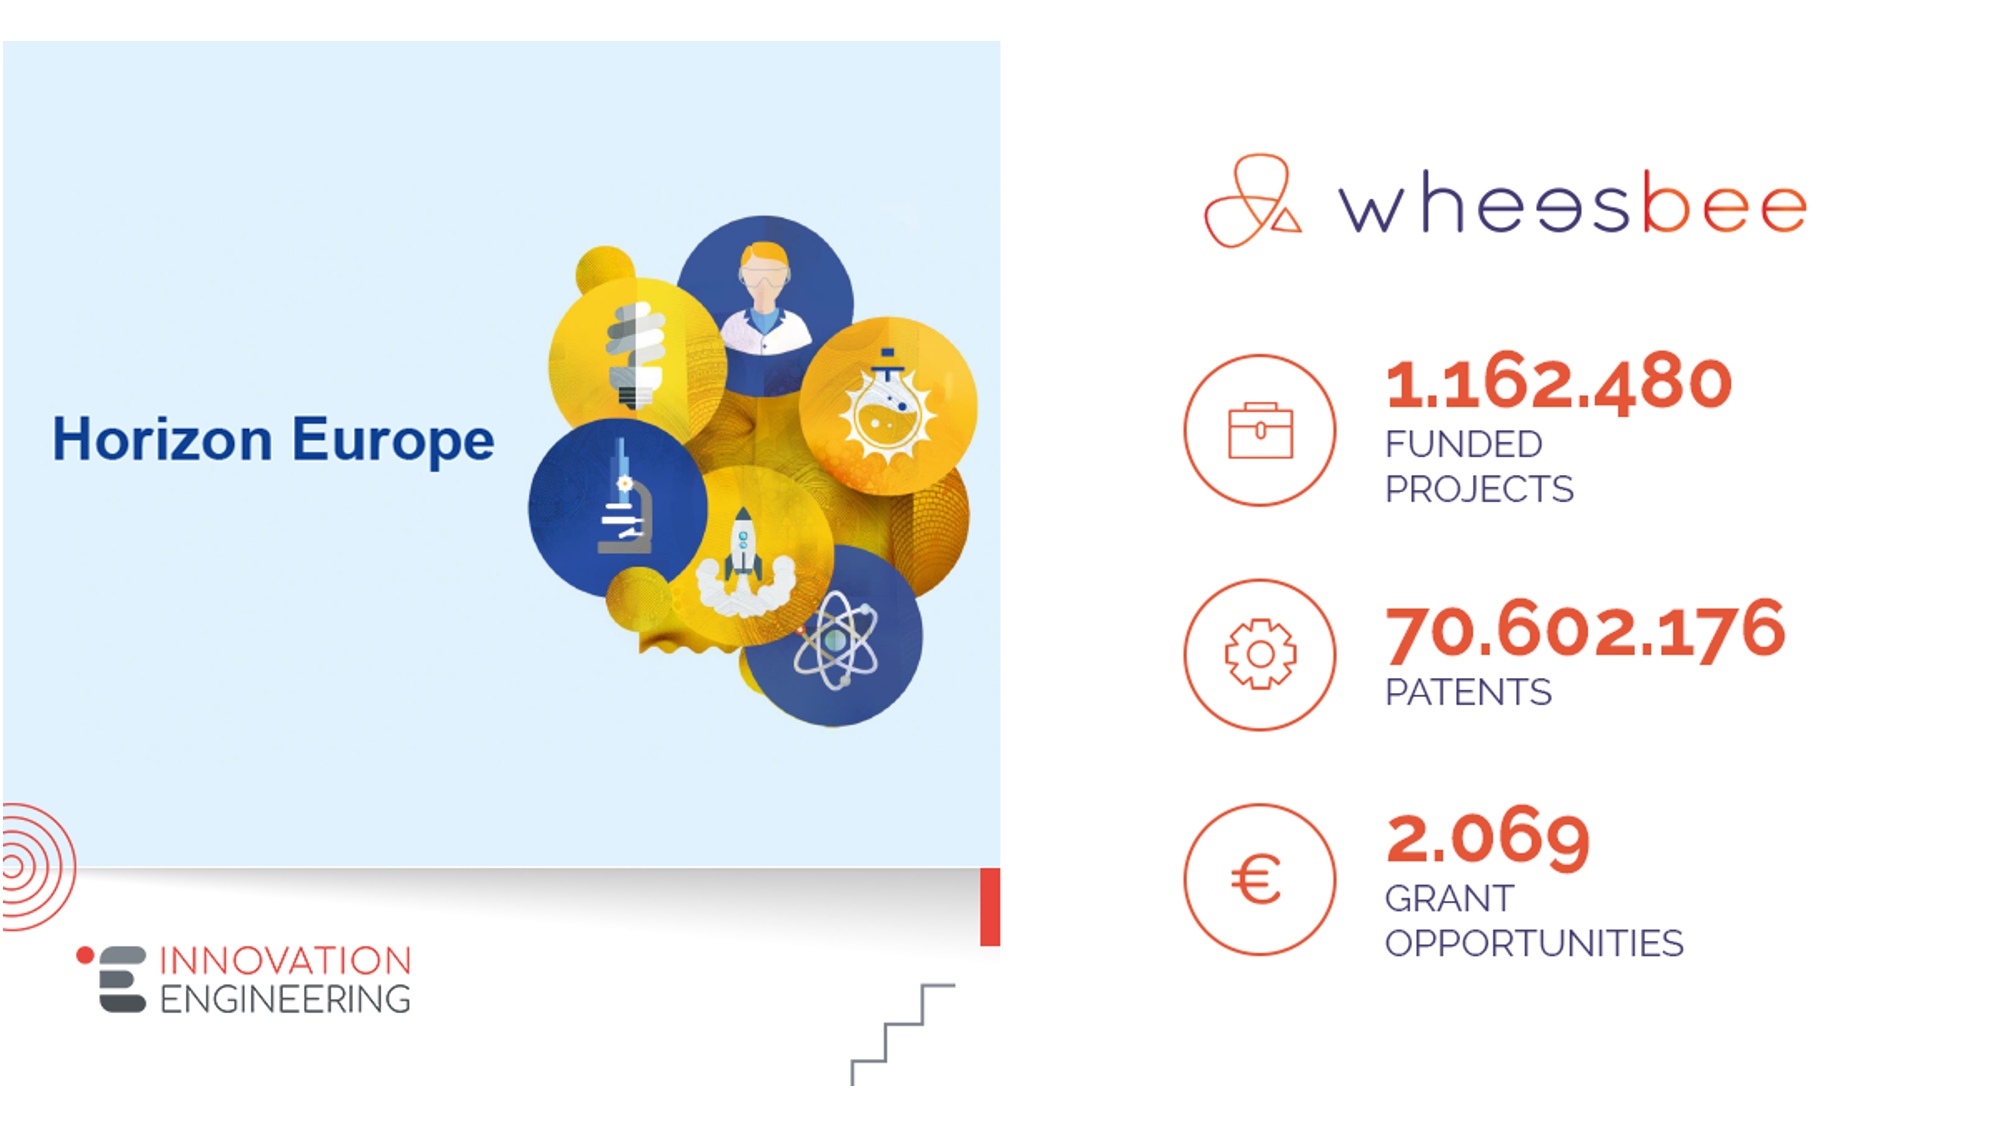 New unique opportunity in Wheesbee: all the coming calls of Horizon Europe added!